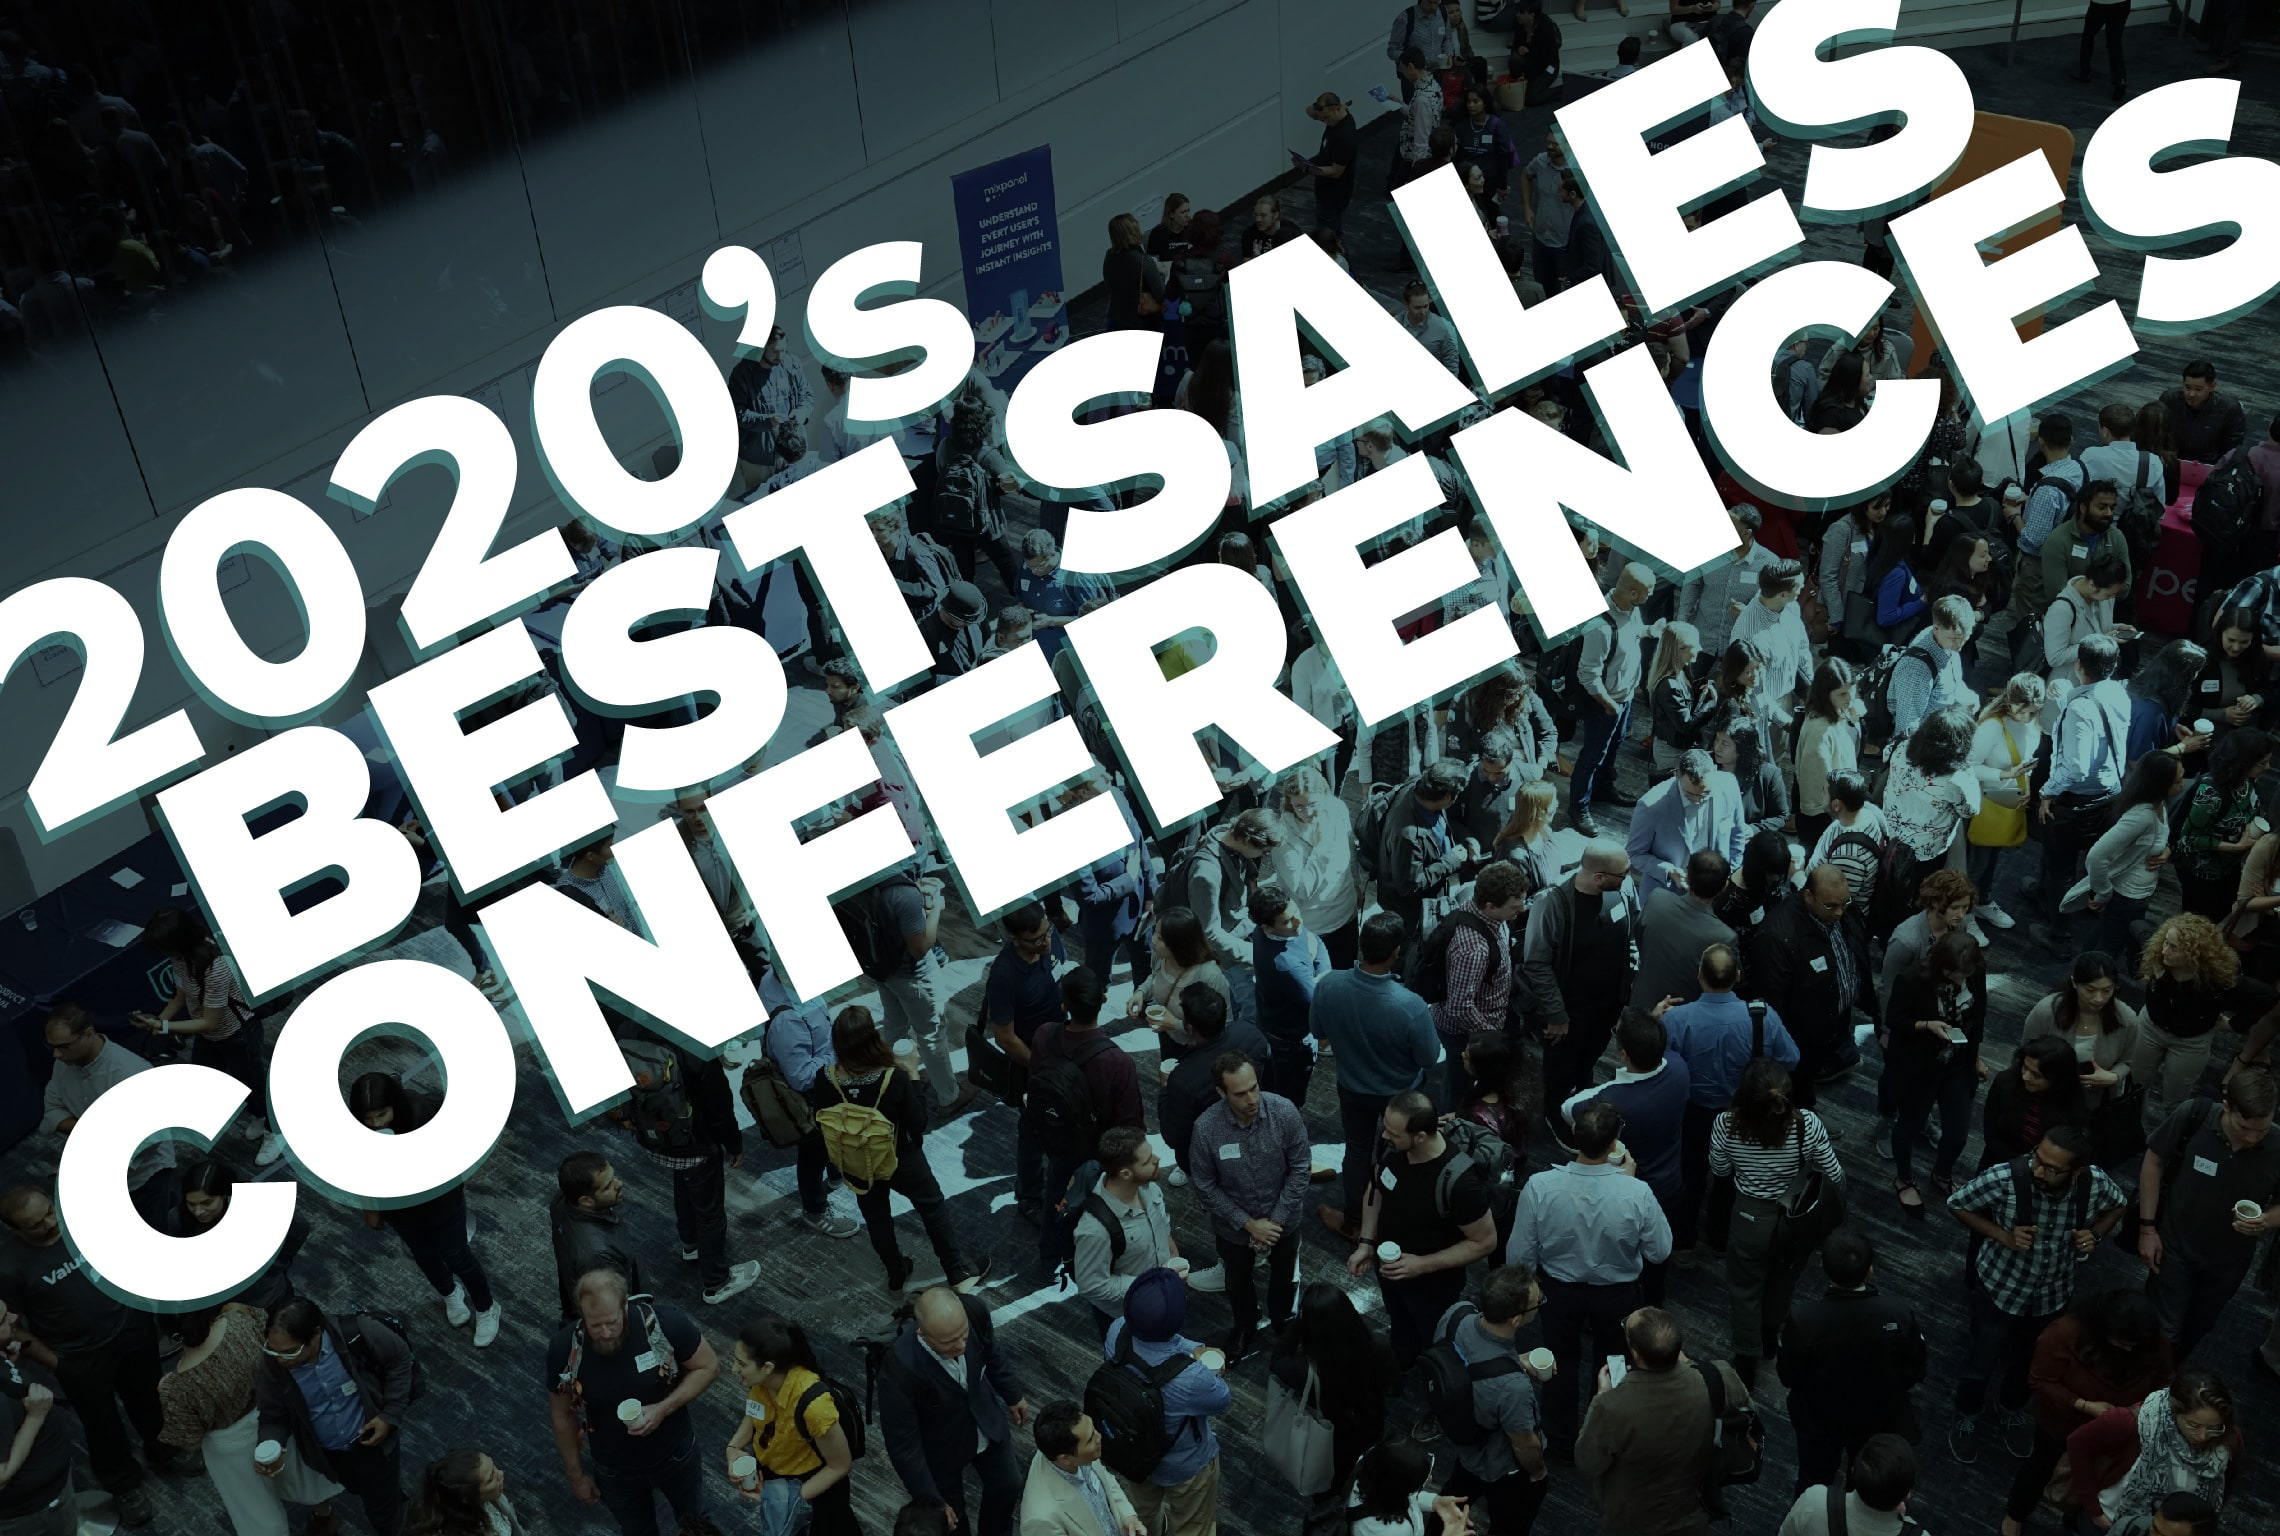 best sales conferences of 2020 sales conferences and events